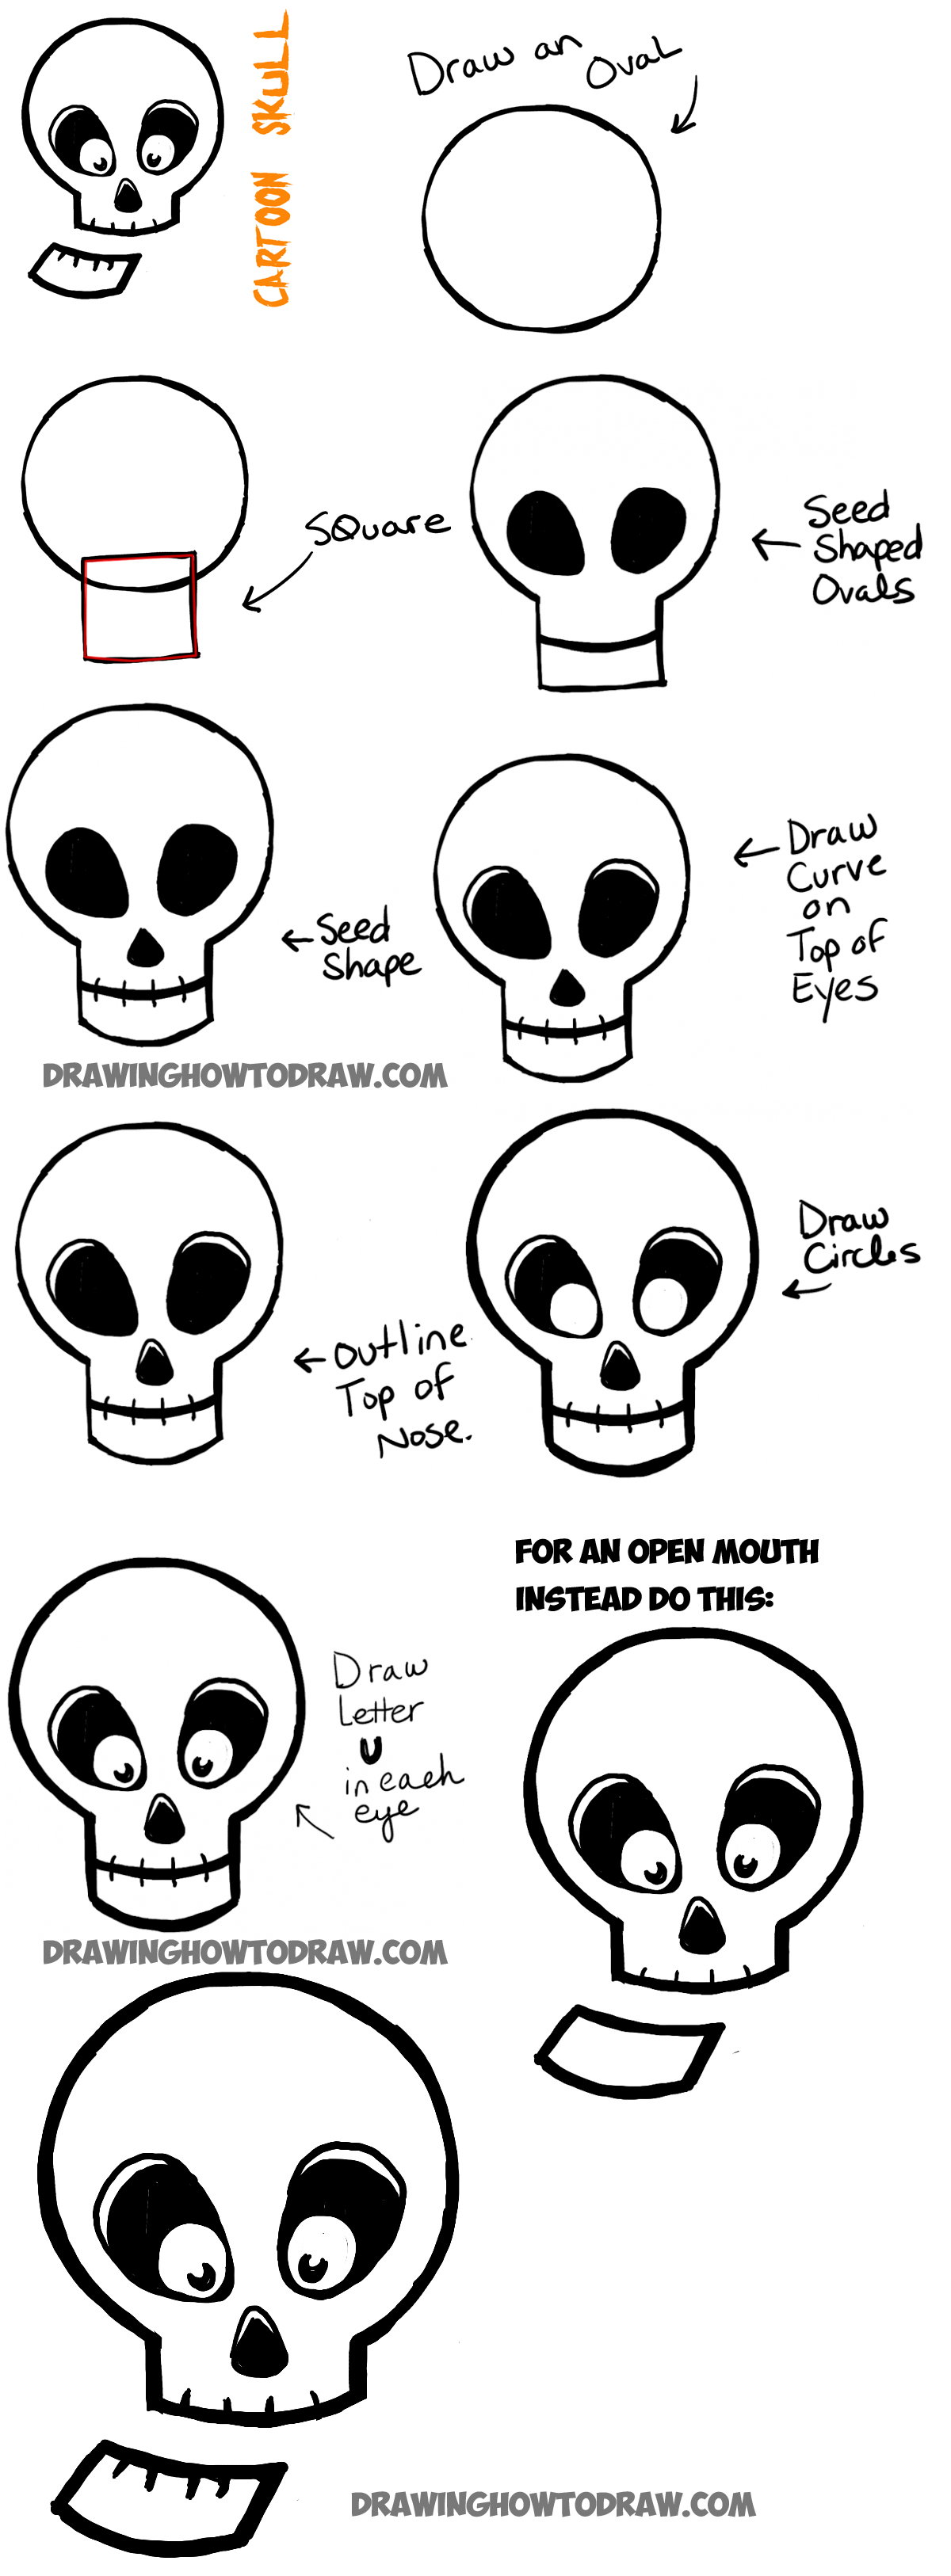 how to draw cartoon skulls for halloween